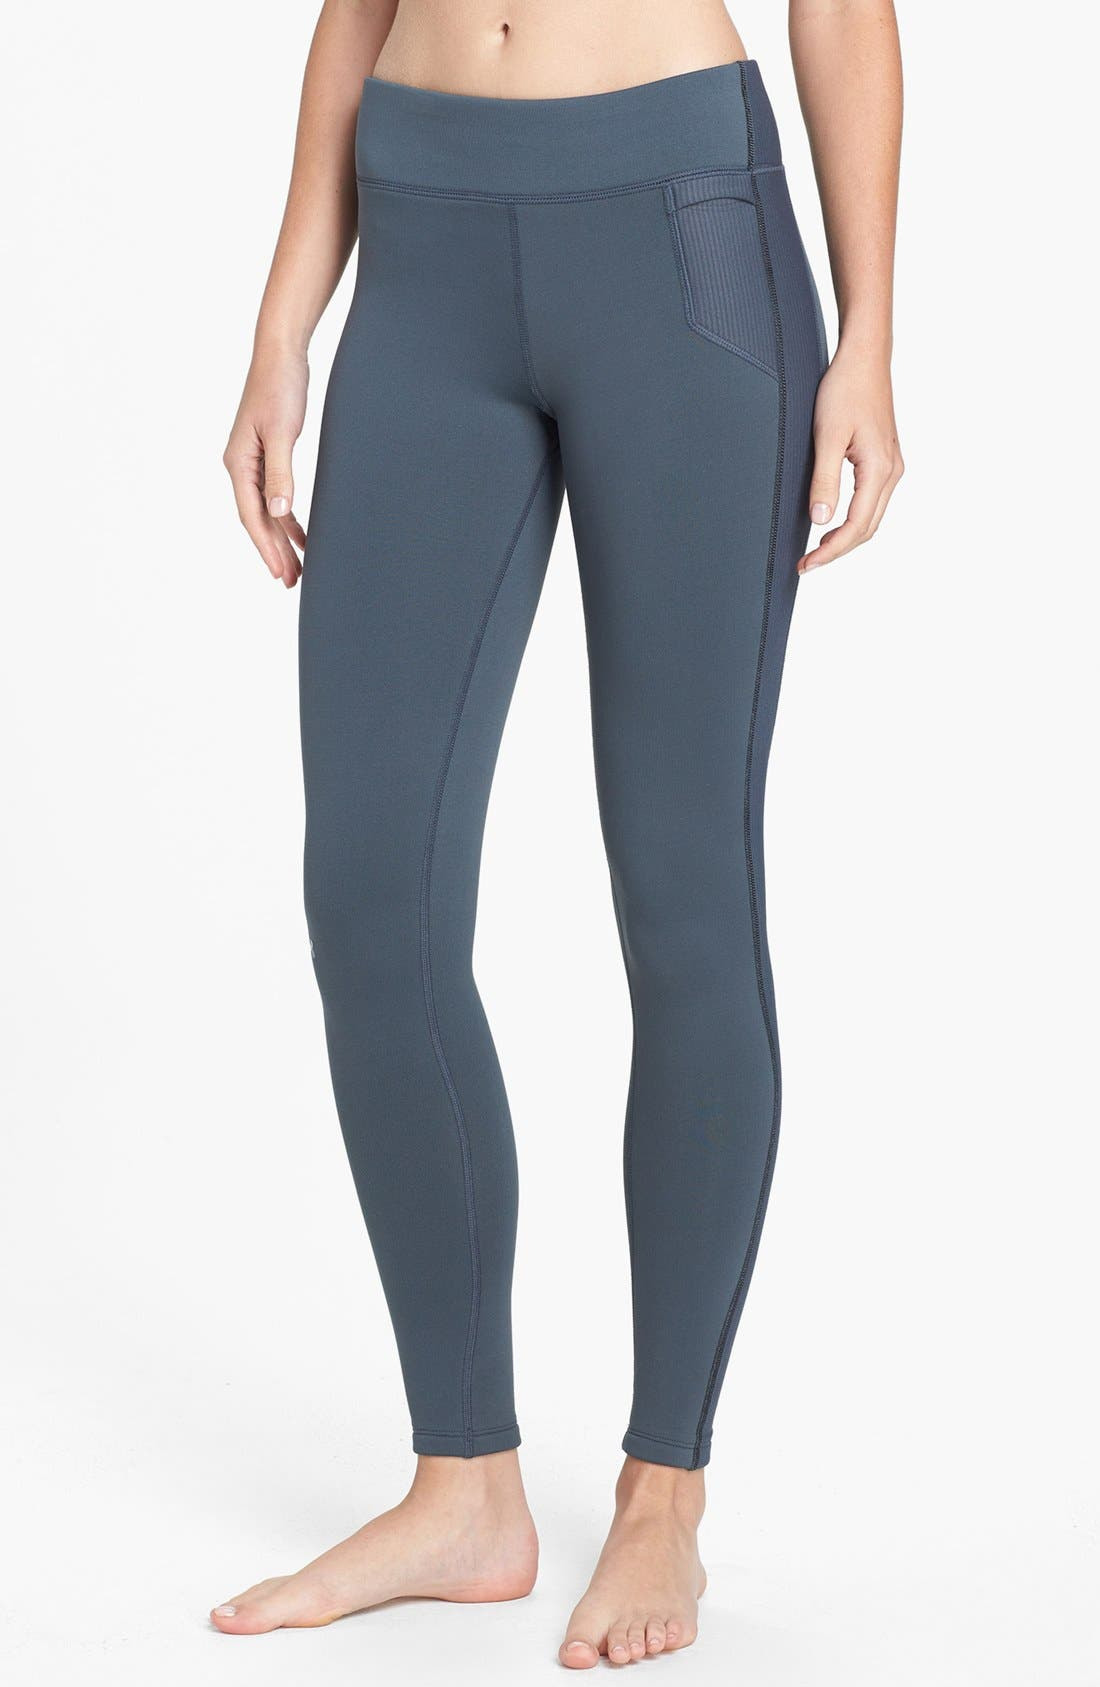 Main Image - Under Armour 'Stretch' Compression Tights